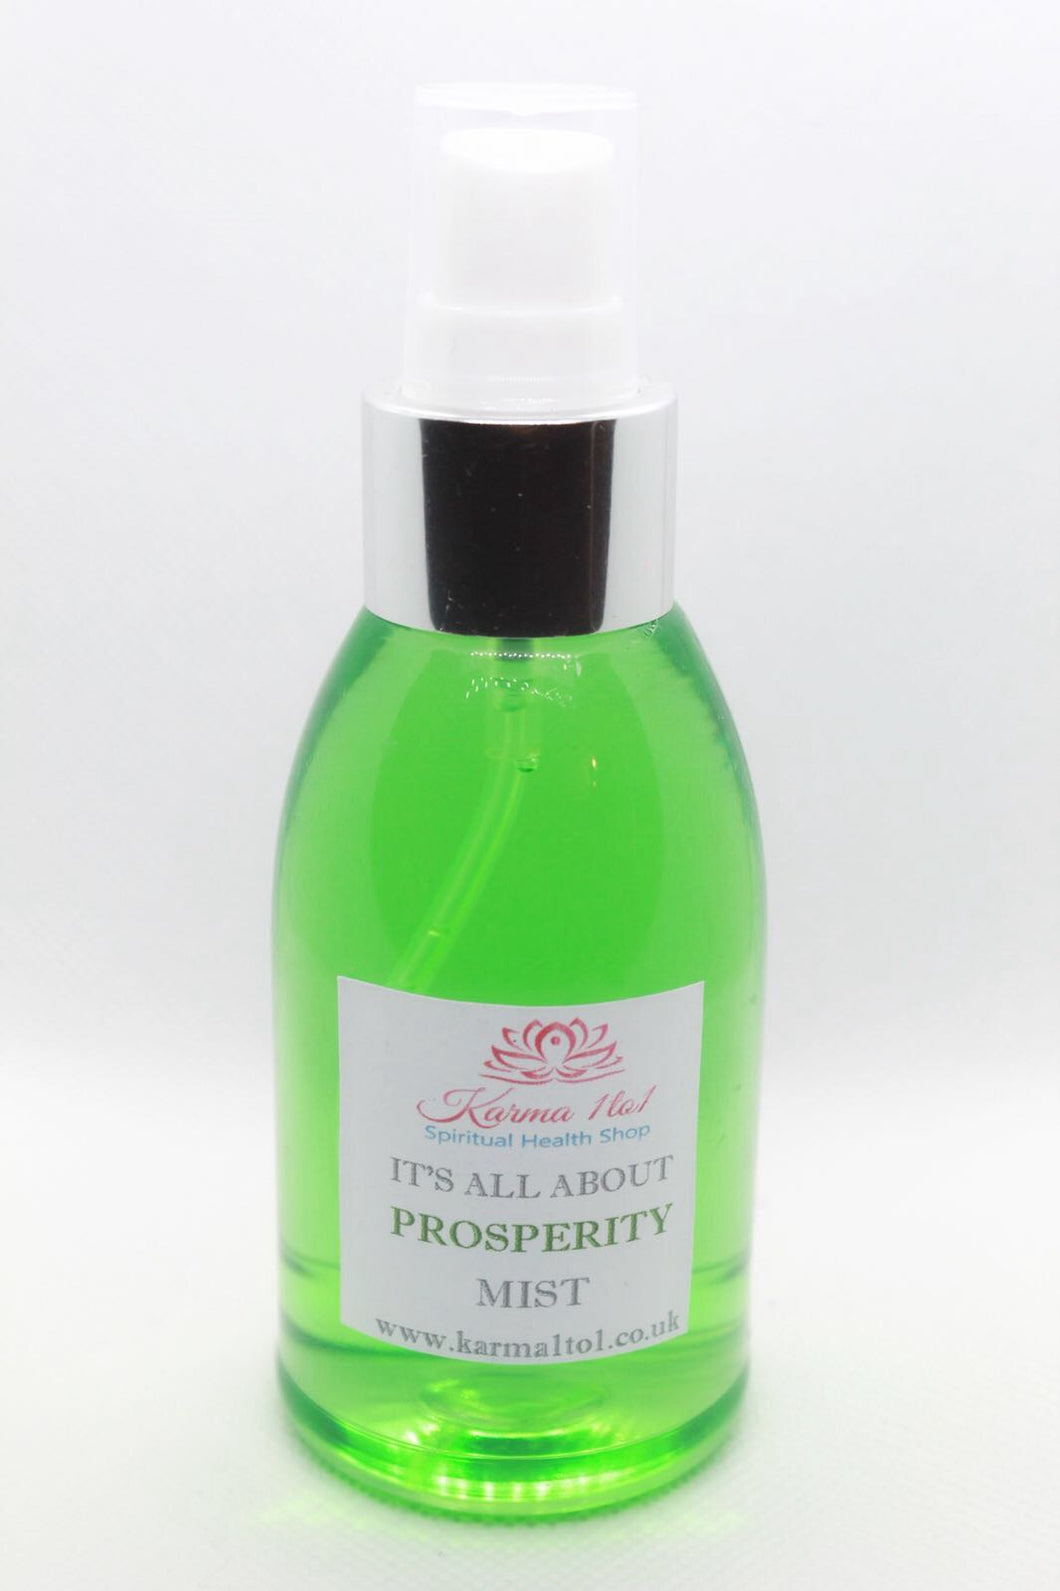 IT'S ALL ABOUT PROSPERITY MIST